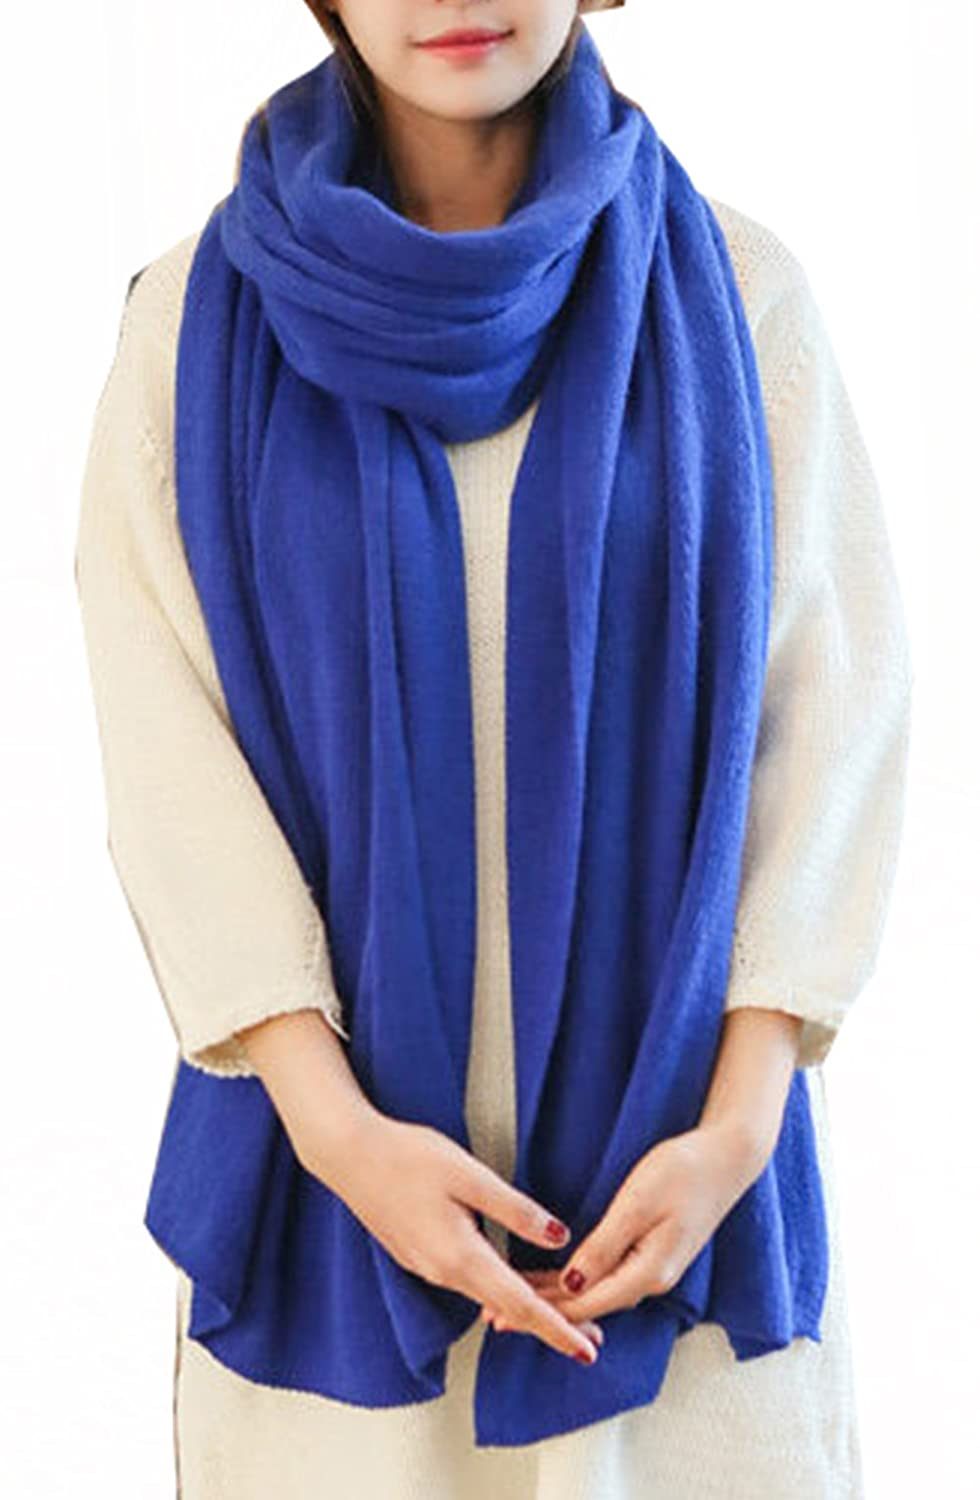 Wander Agio Womens Warm Winter Infinity Scarves Set Blanket Scarf Pure Color WASCARFCX0306